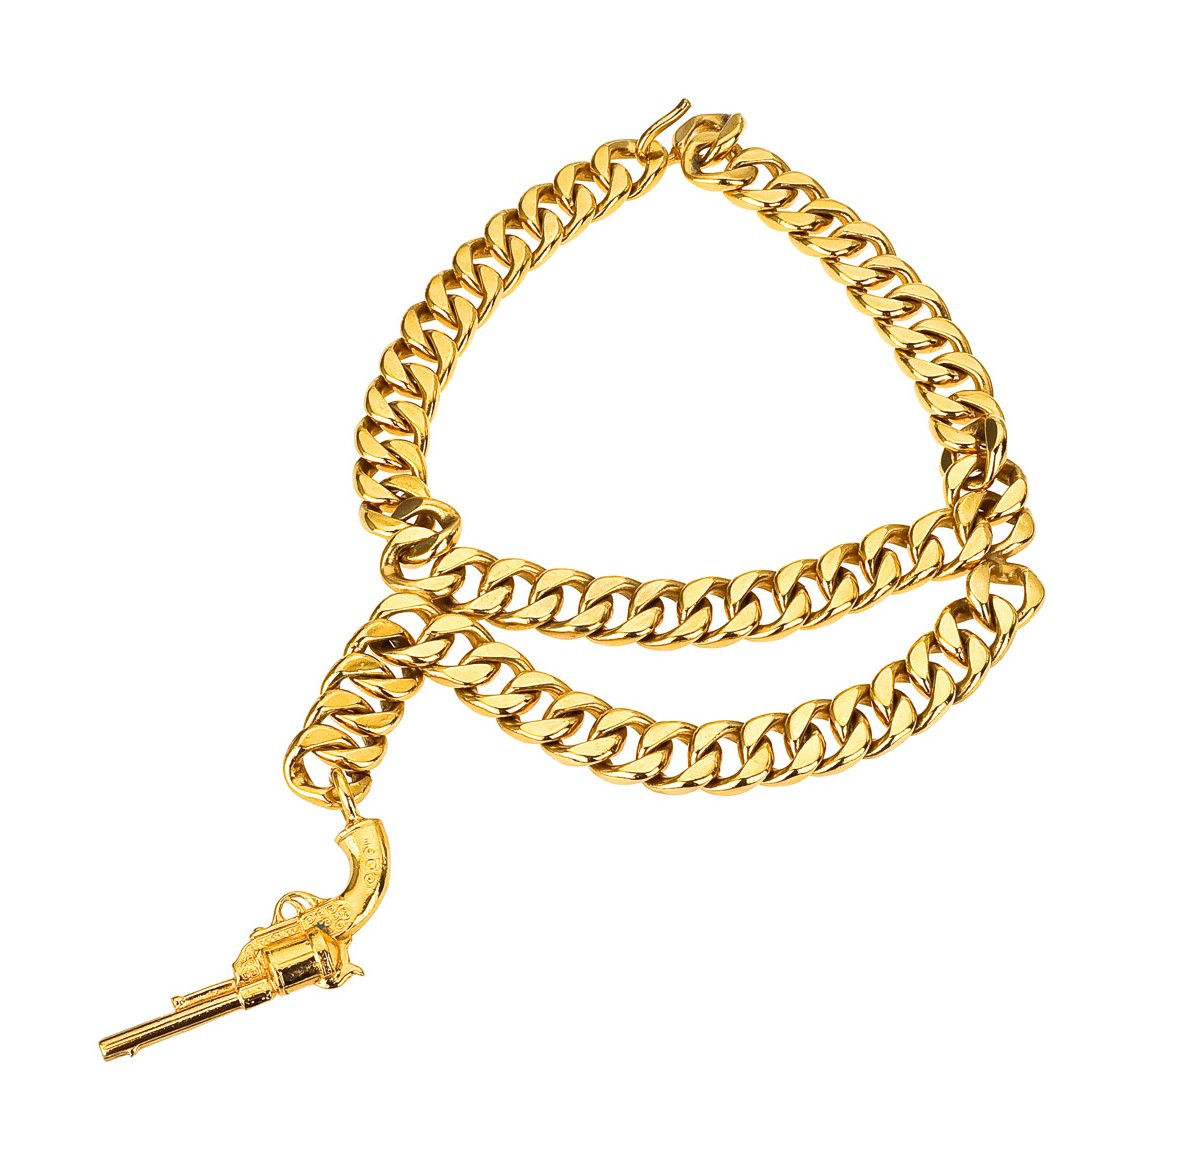 130 Vintage Chanel gun necklace resized